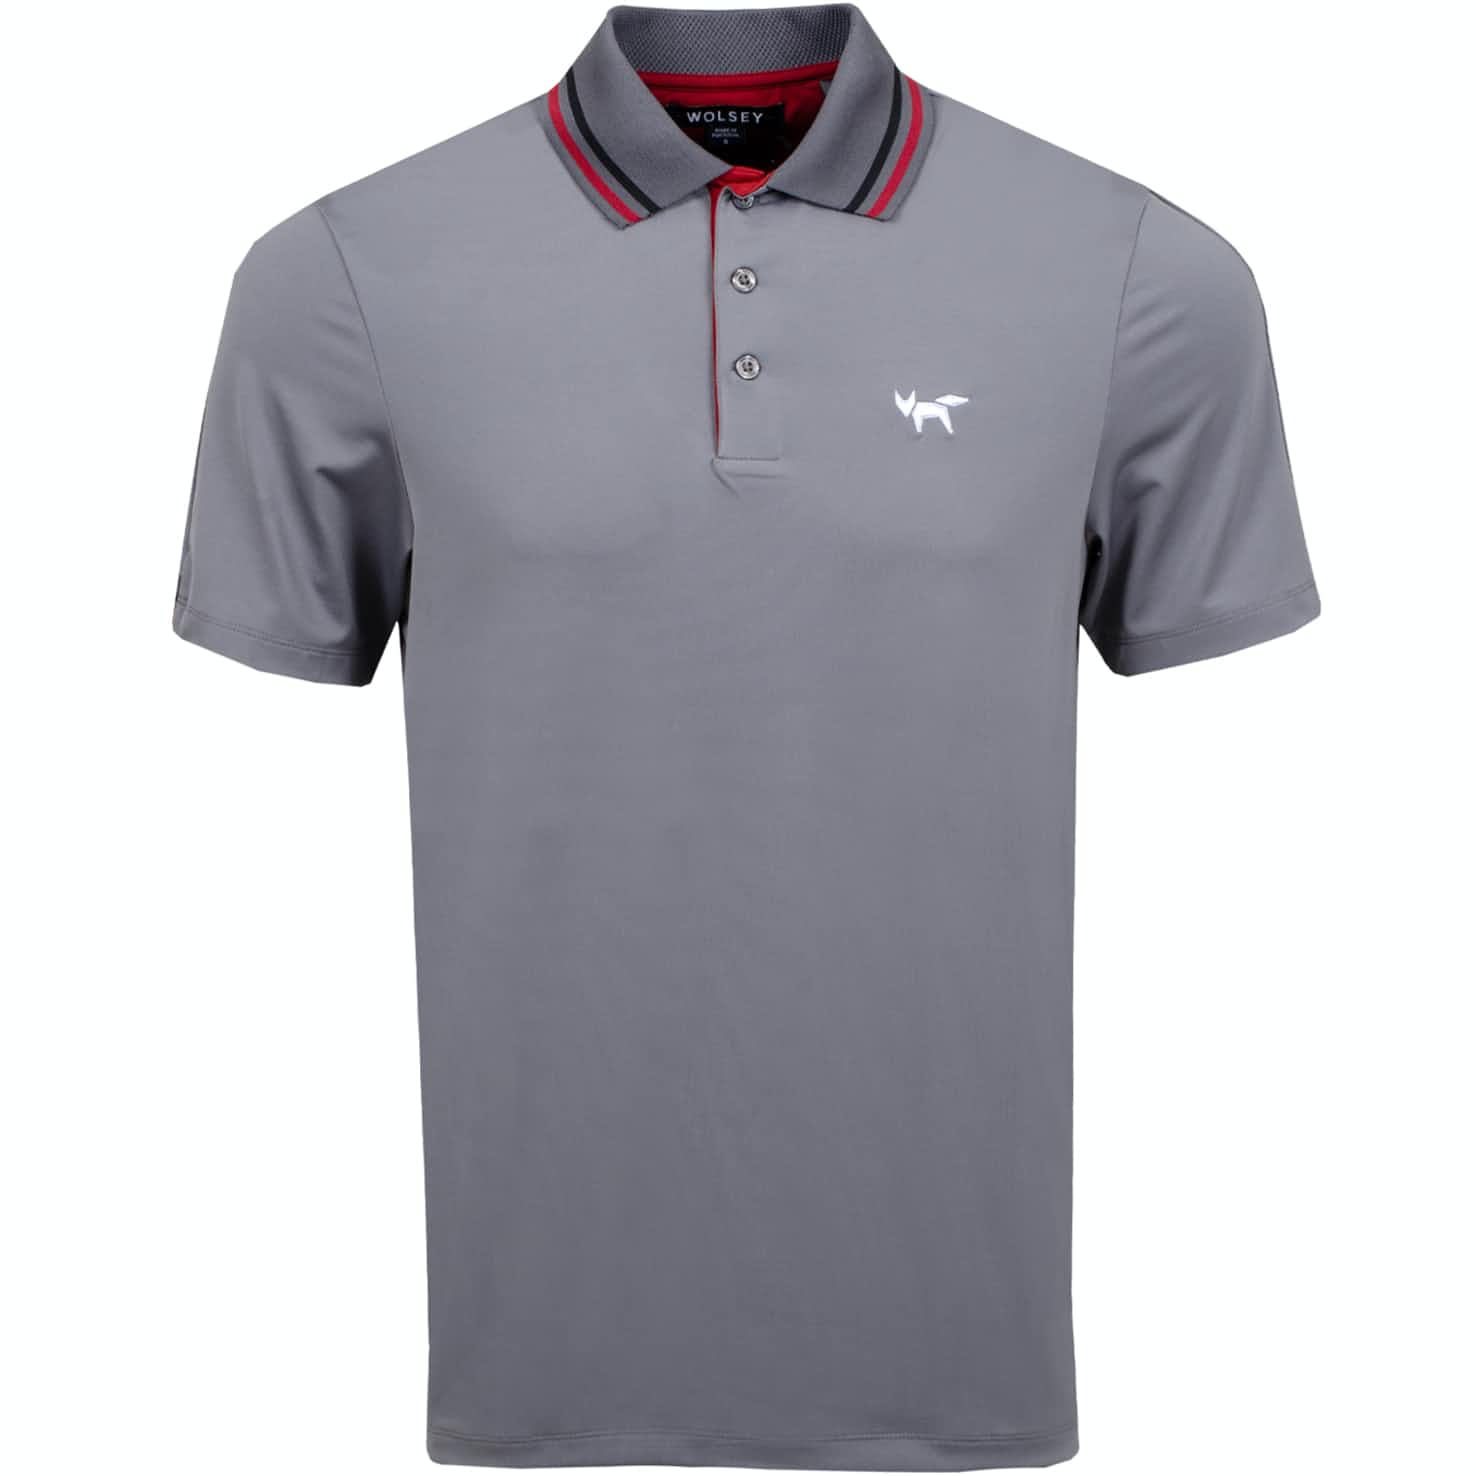 Tipping Polo Grey Melange - AW19